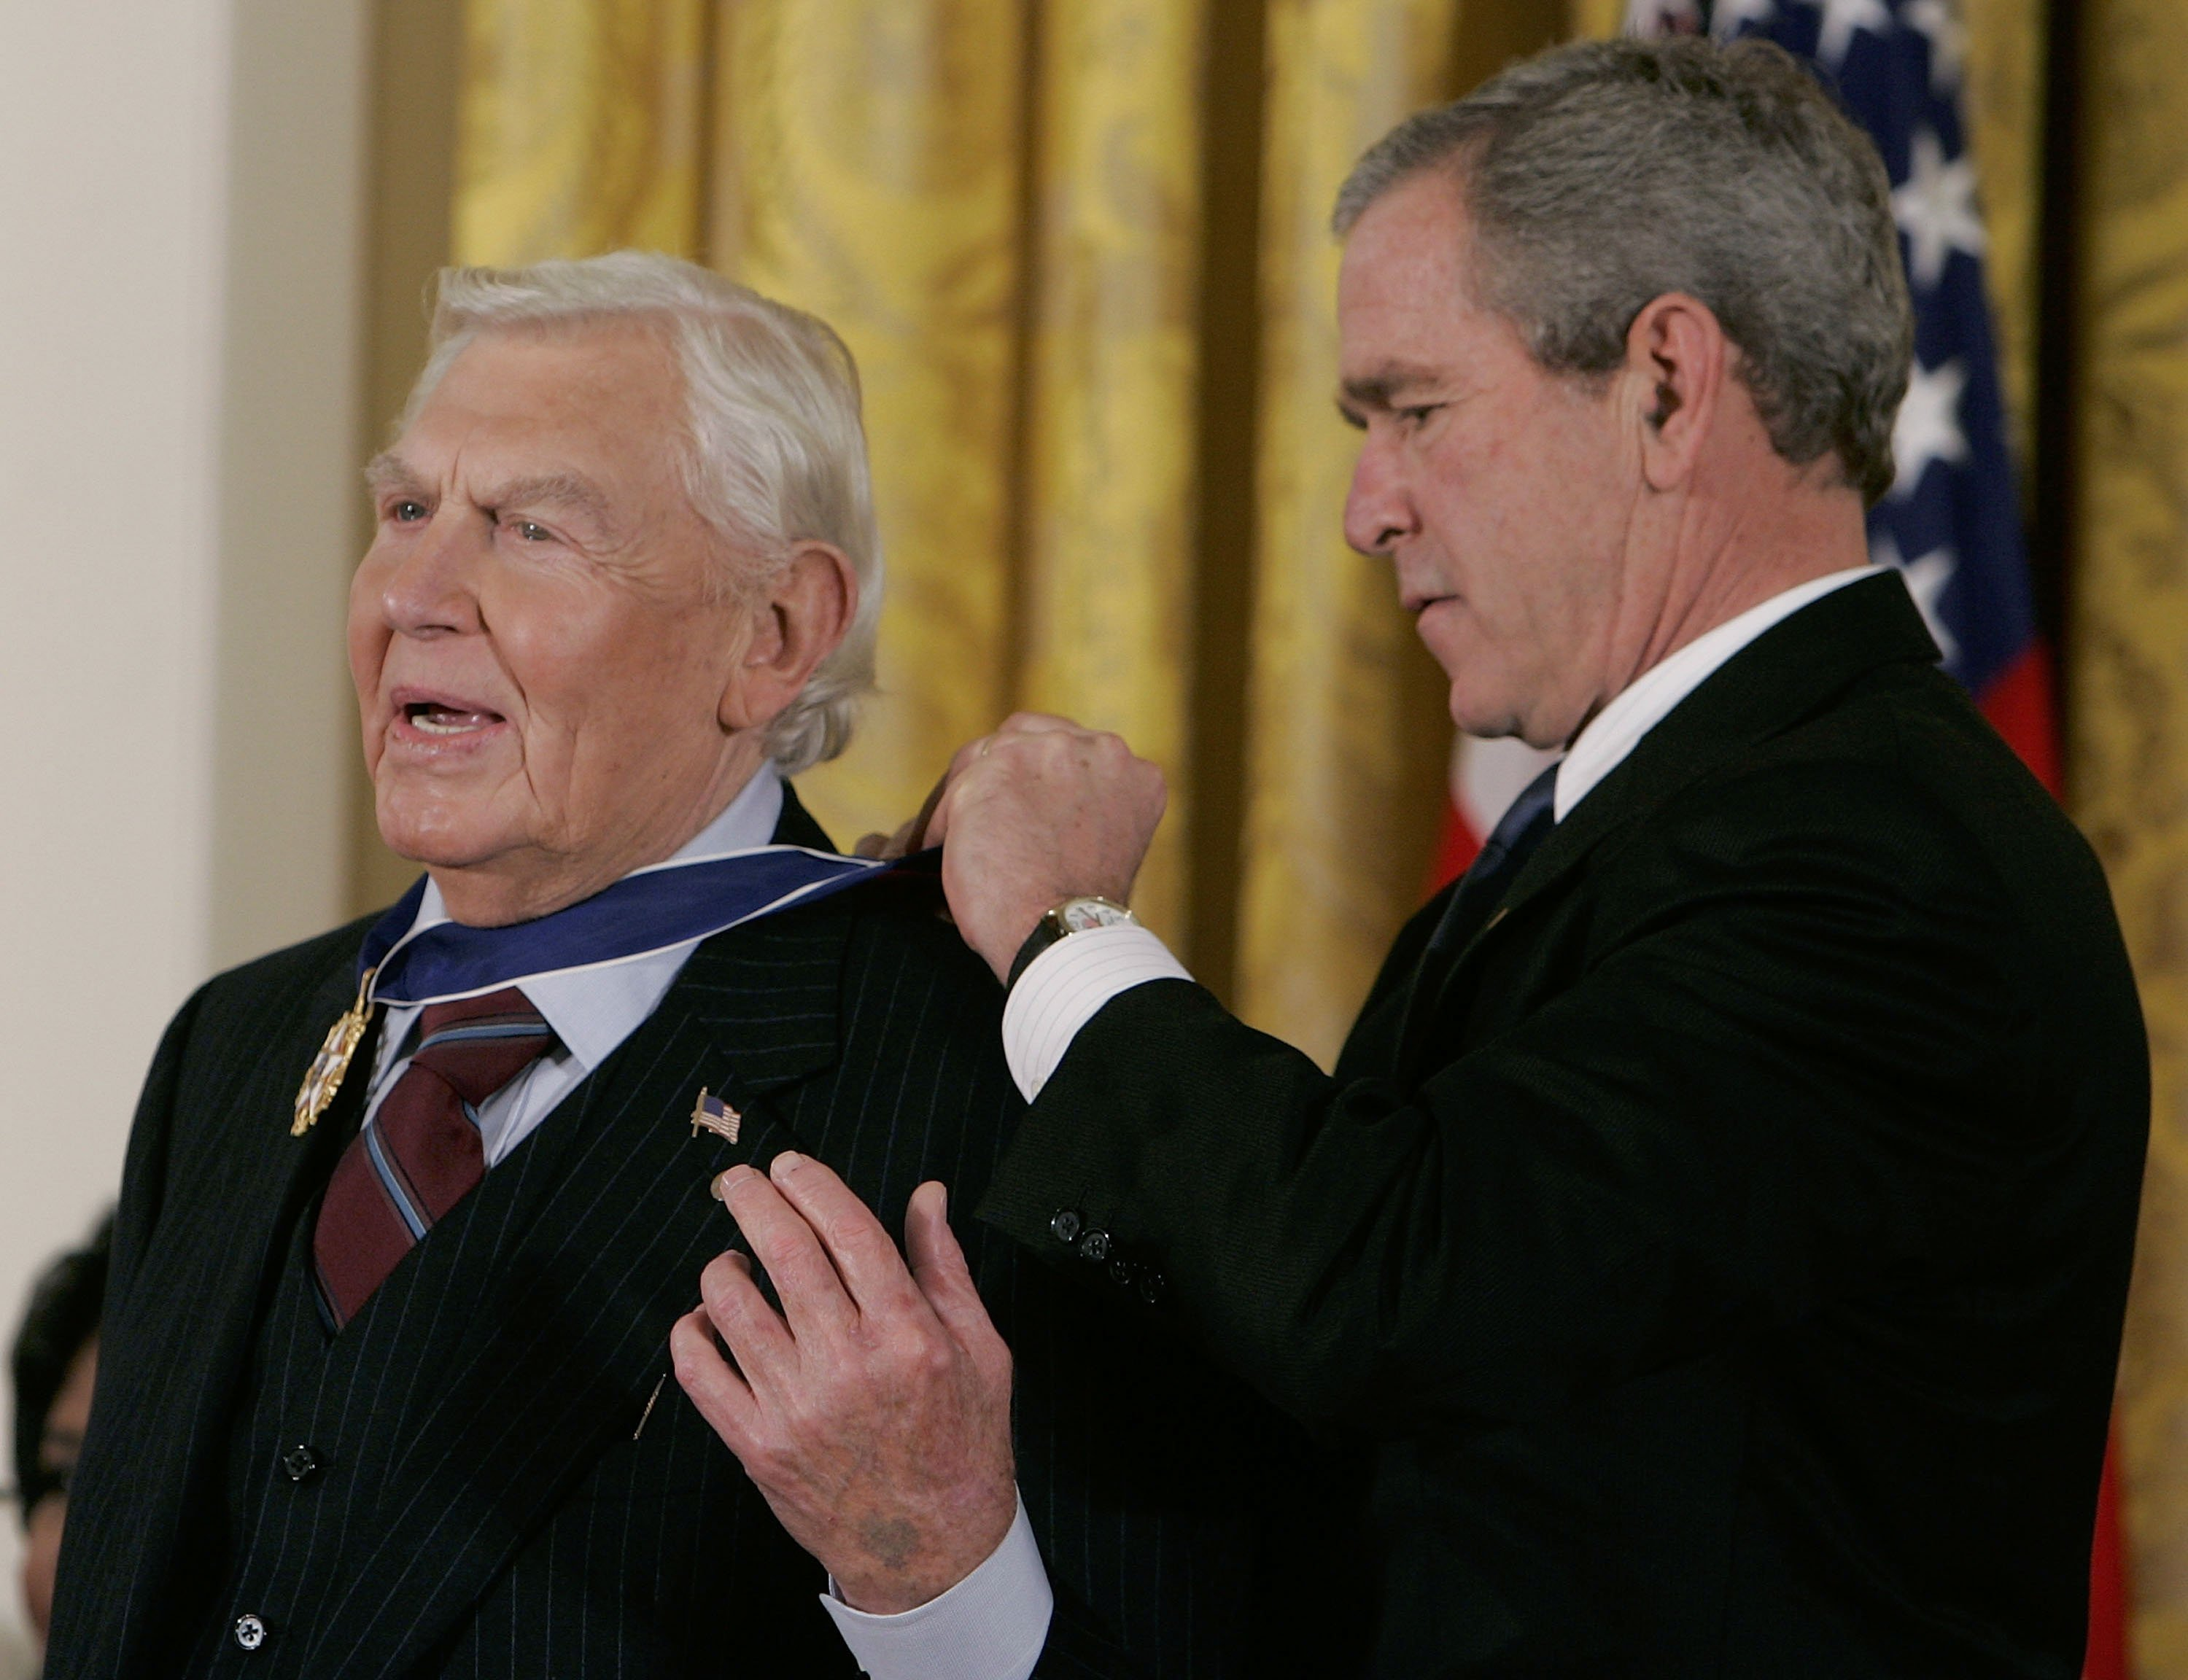 Andy Griffith recieves the Medal of Freedom from U.S. President George W. Bush during a ceremony at the White House in 2005. Image credit: Getty Images/GlobalImagesUkraine